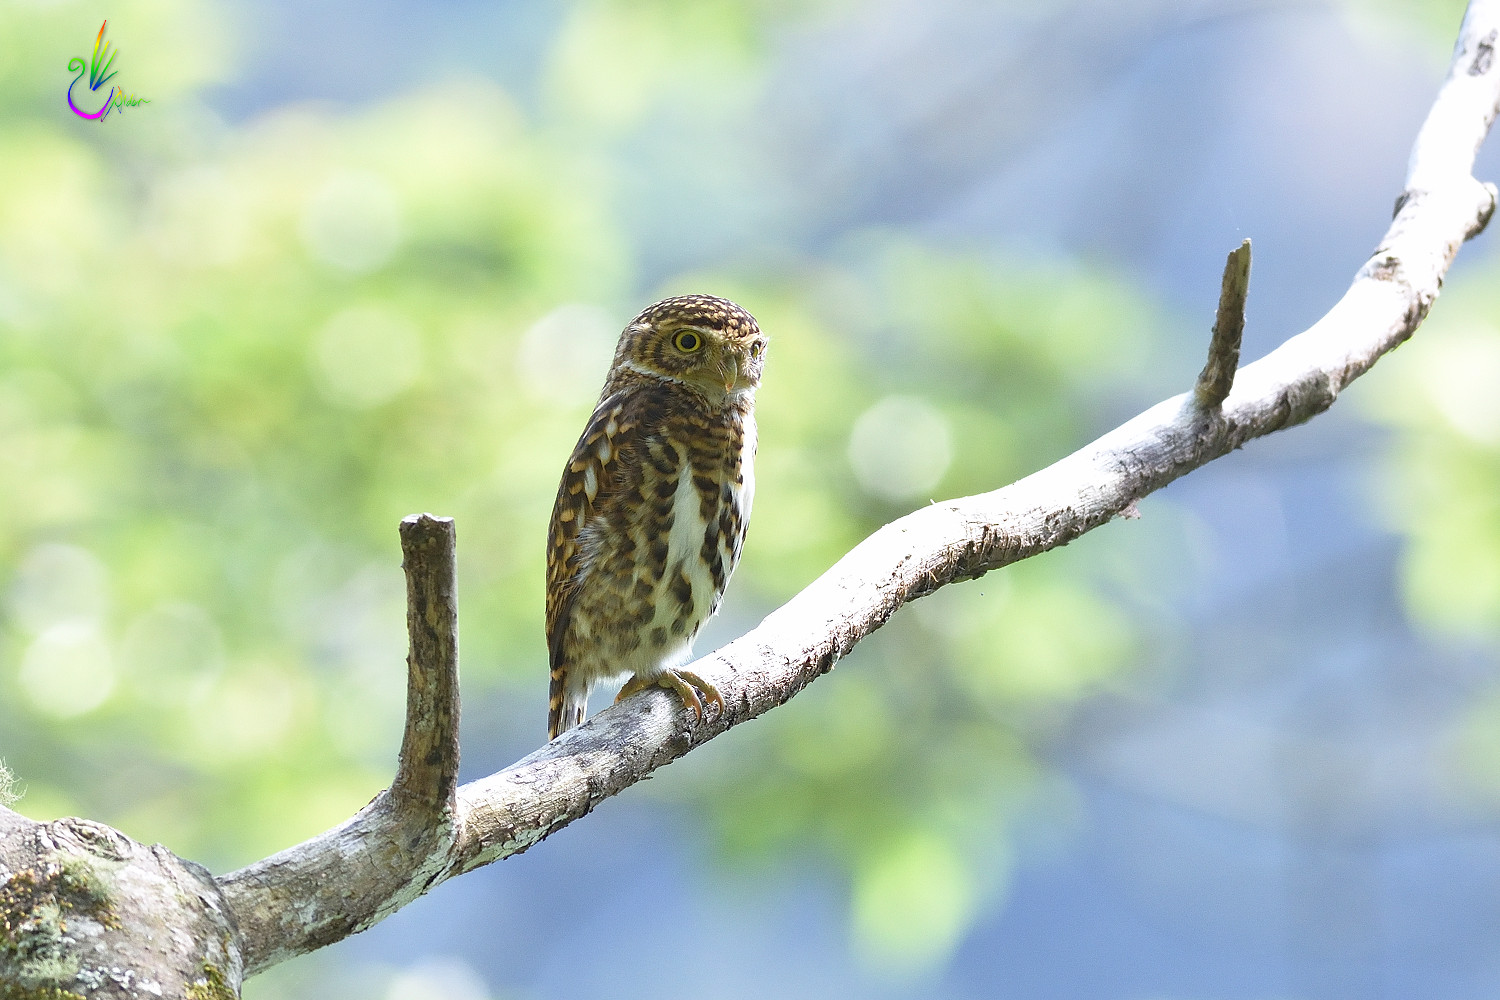 Collared_Pigmy_Owlet_4719